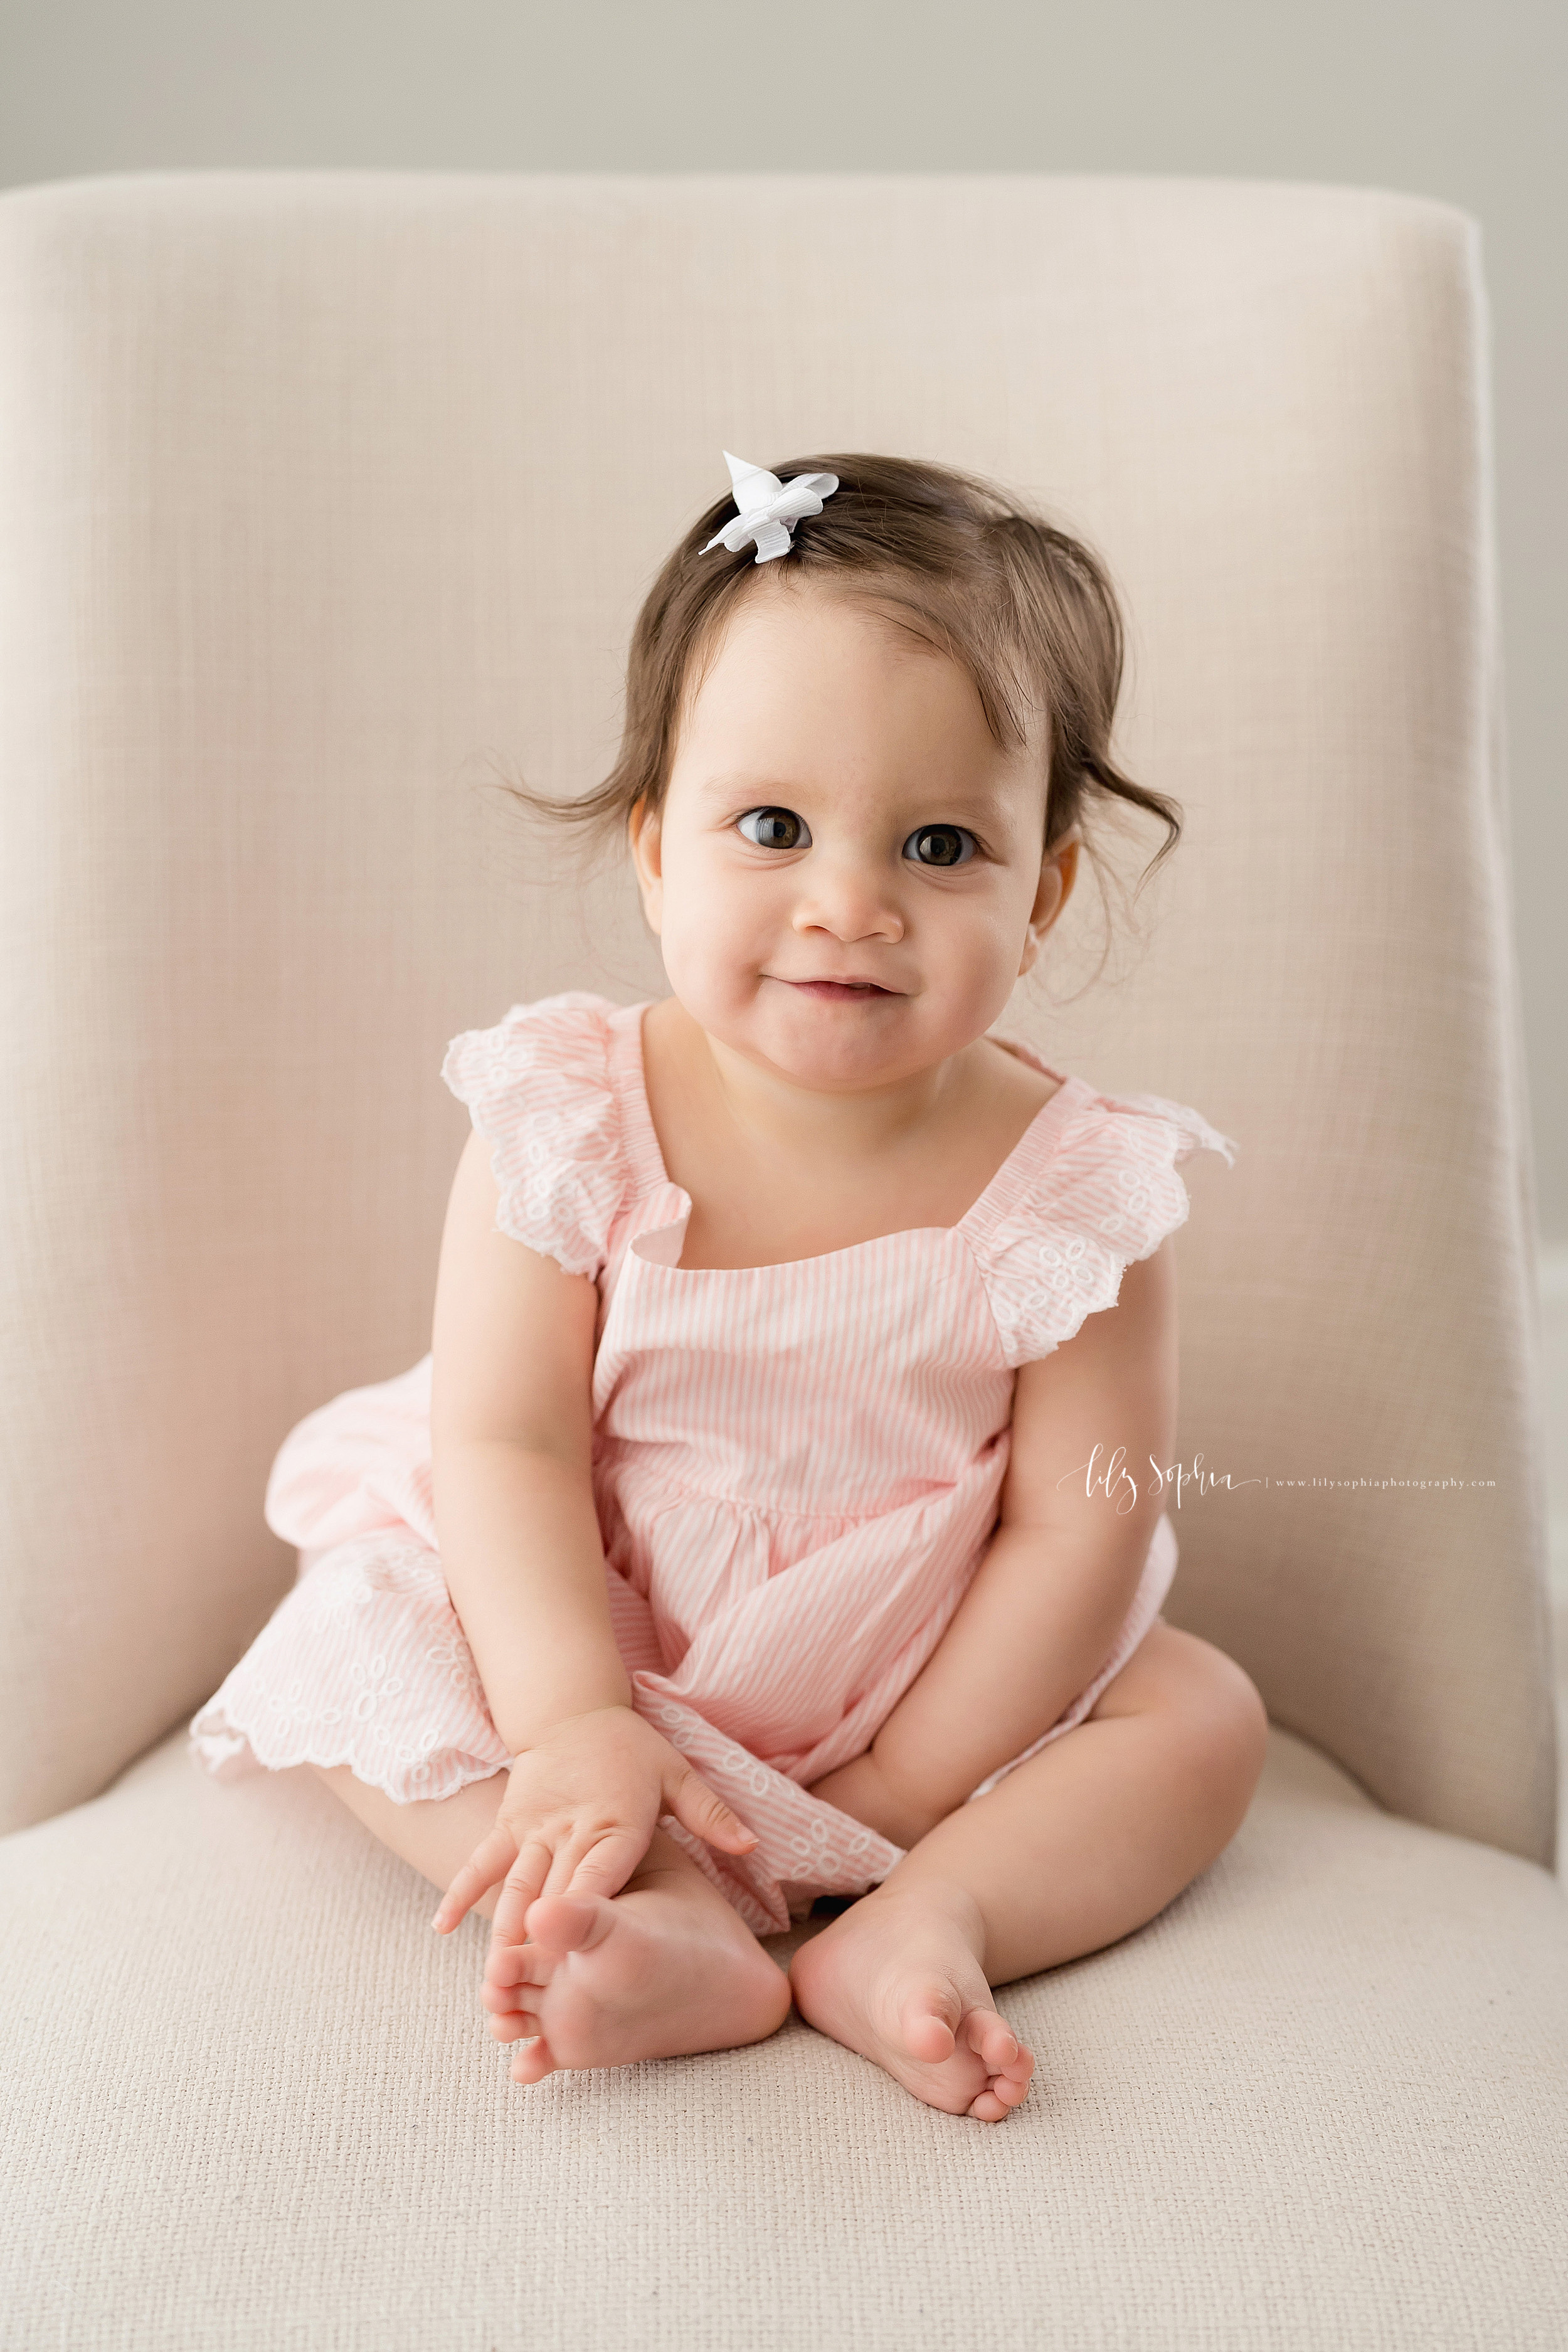 Milestone photo of a nine month old baby girl as she sits in a tan armless chair in natural light in an Atlanta studio.